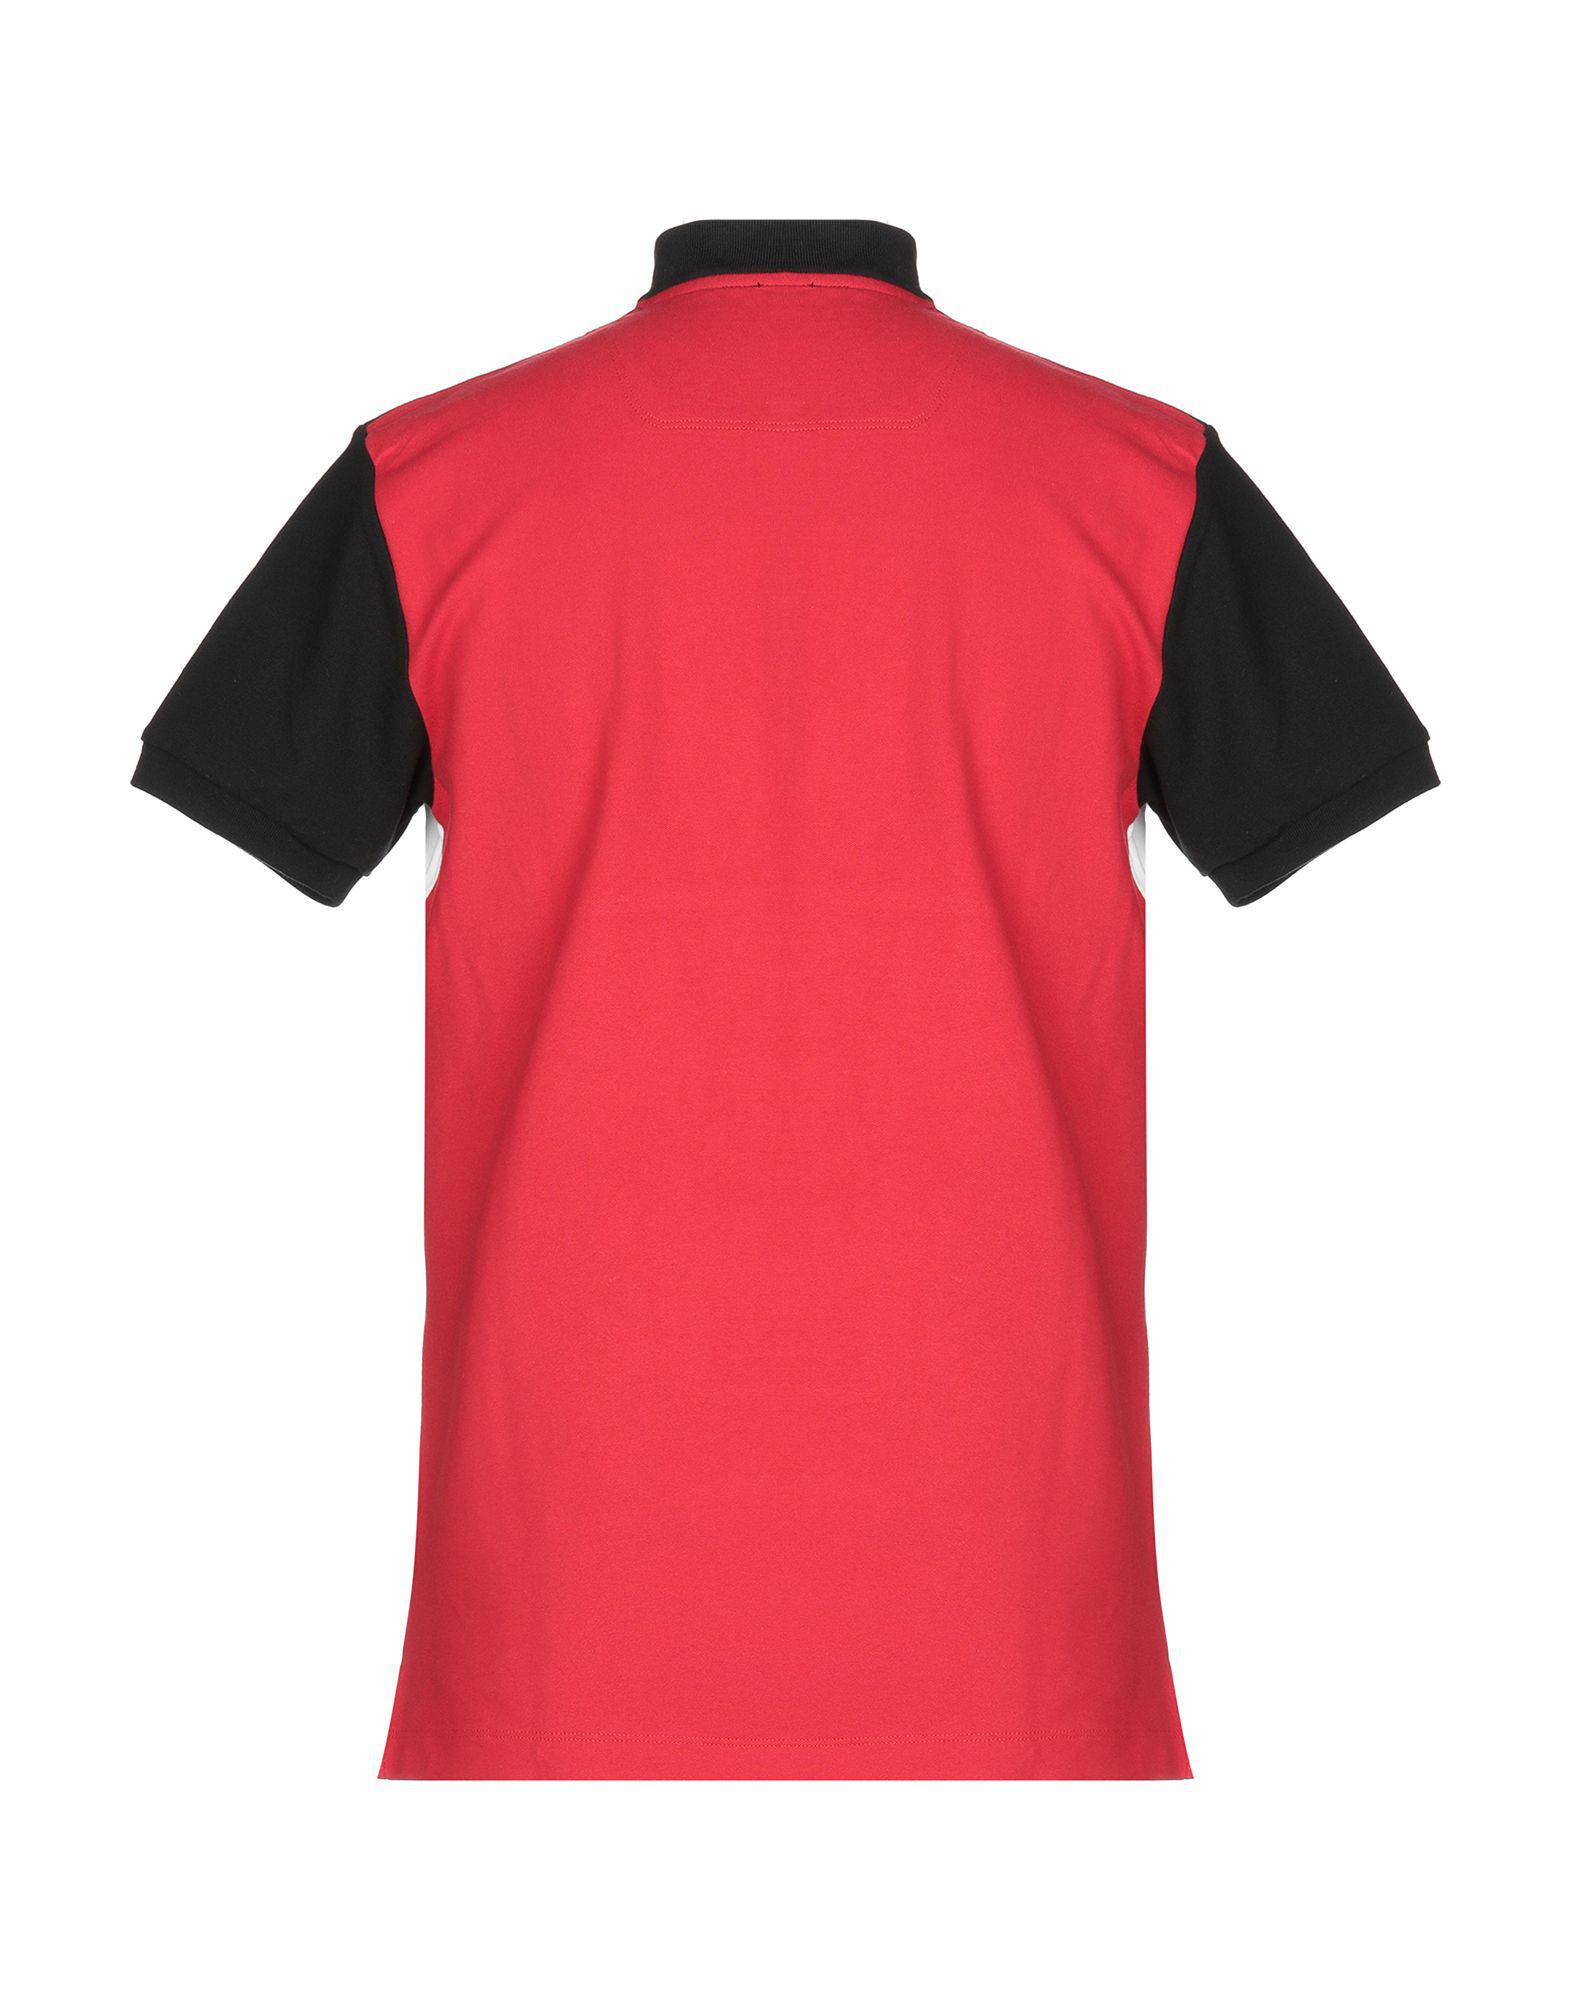 9a328eff Lyst - DIESEL Polo Shirt in Red for Men